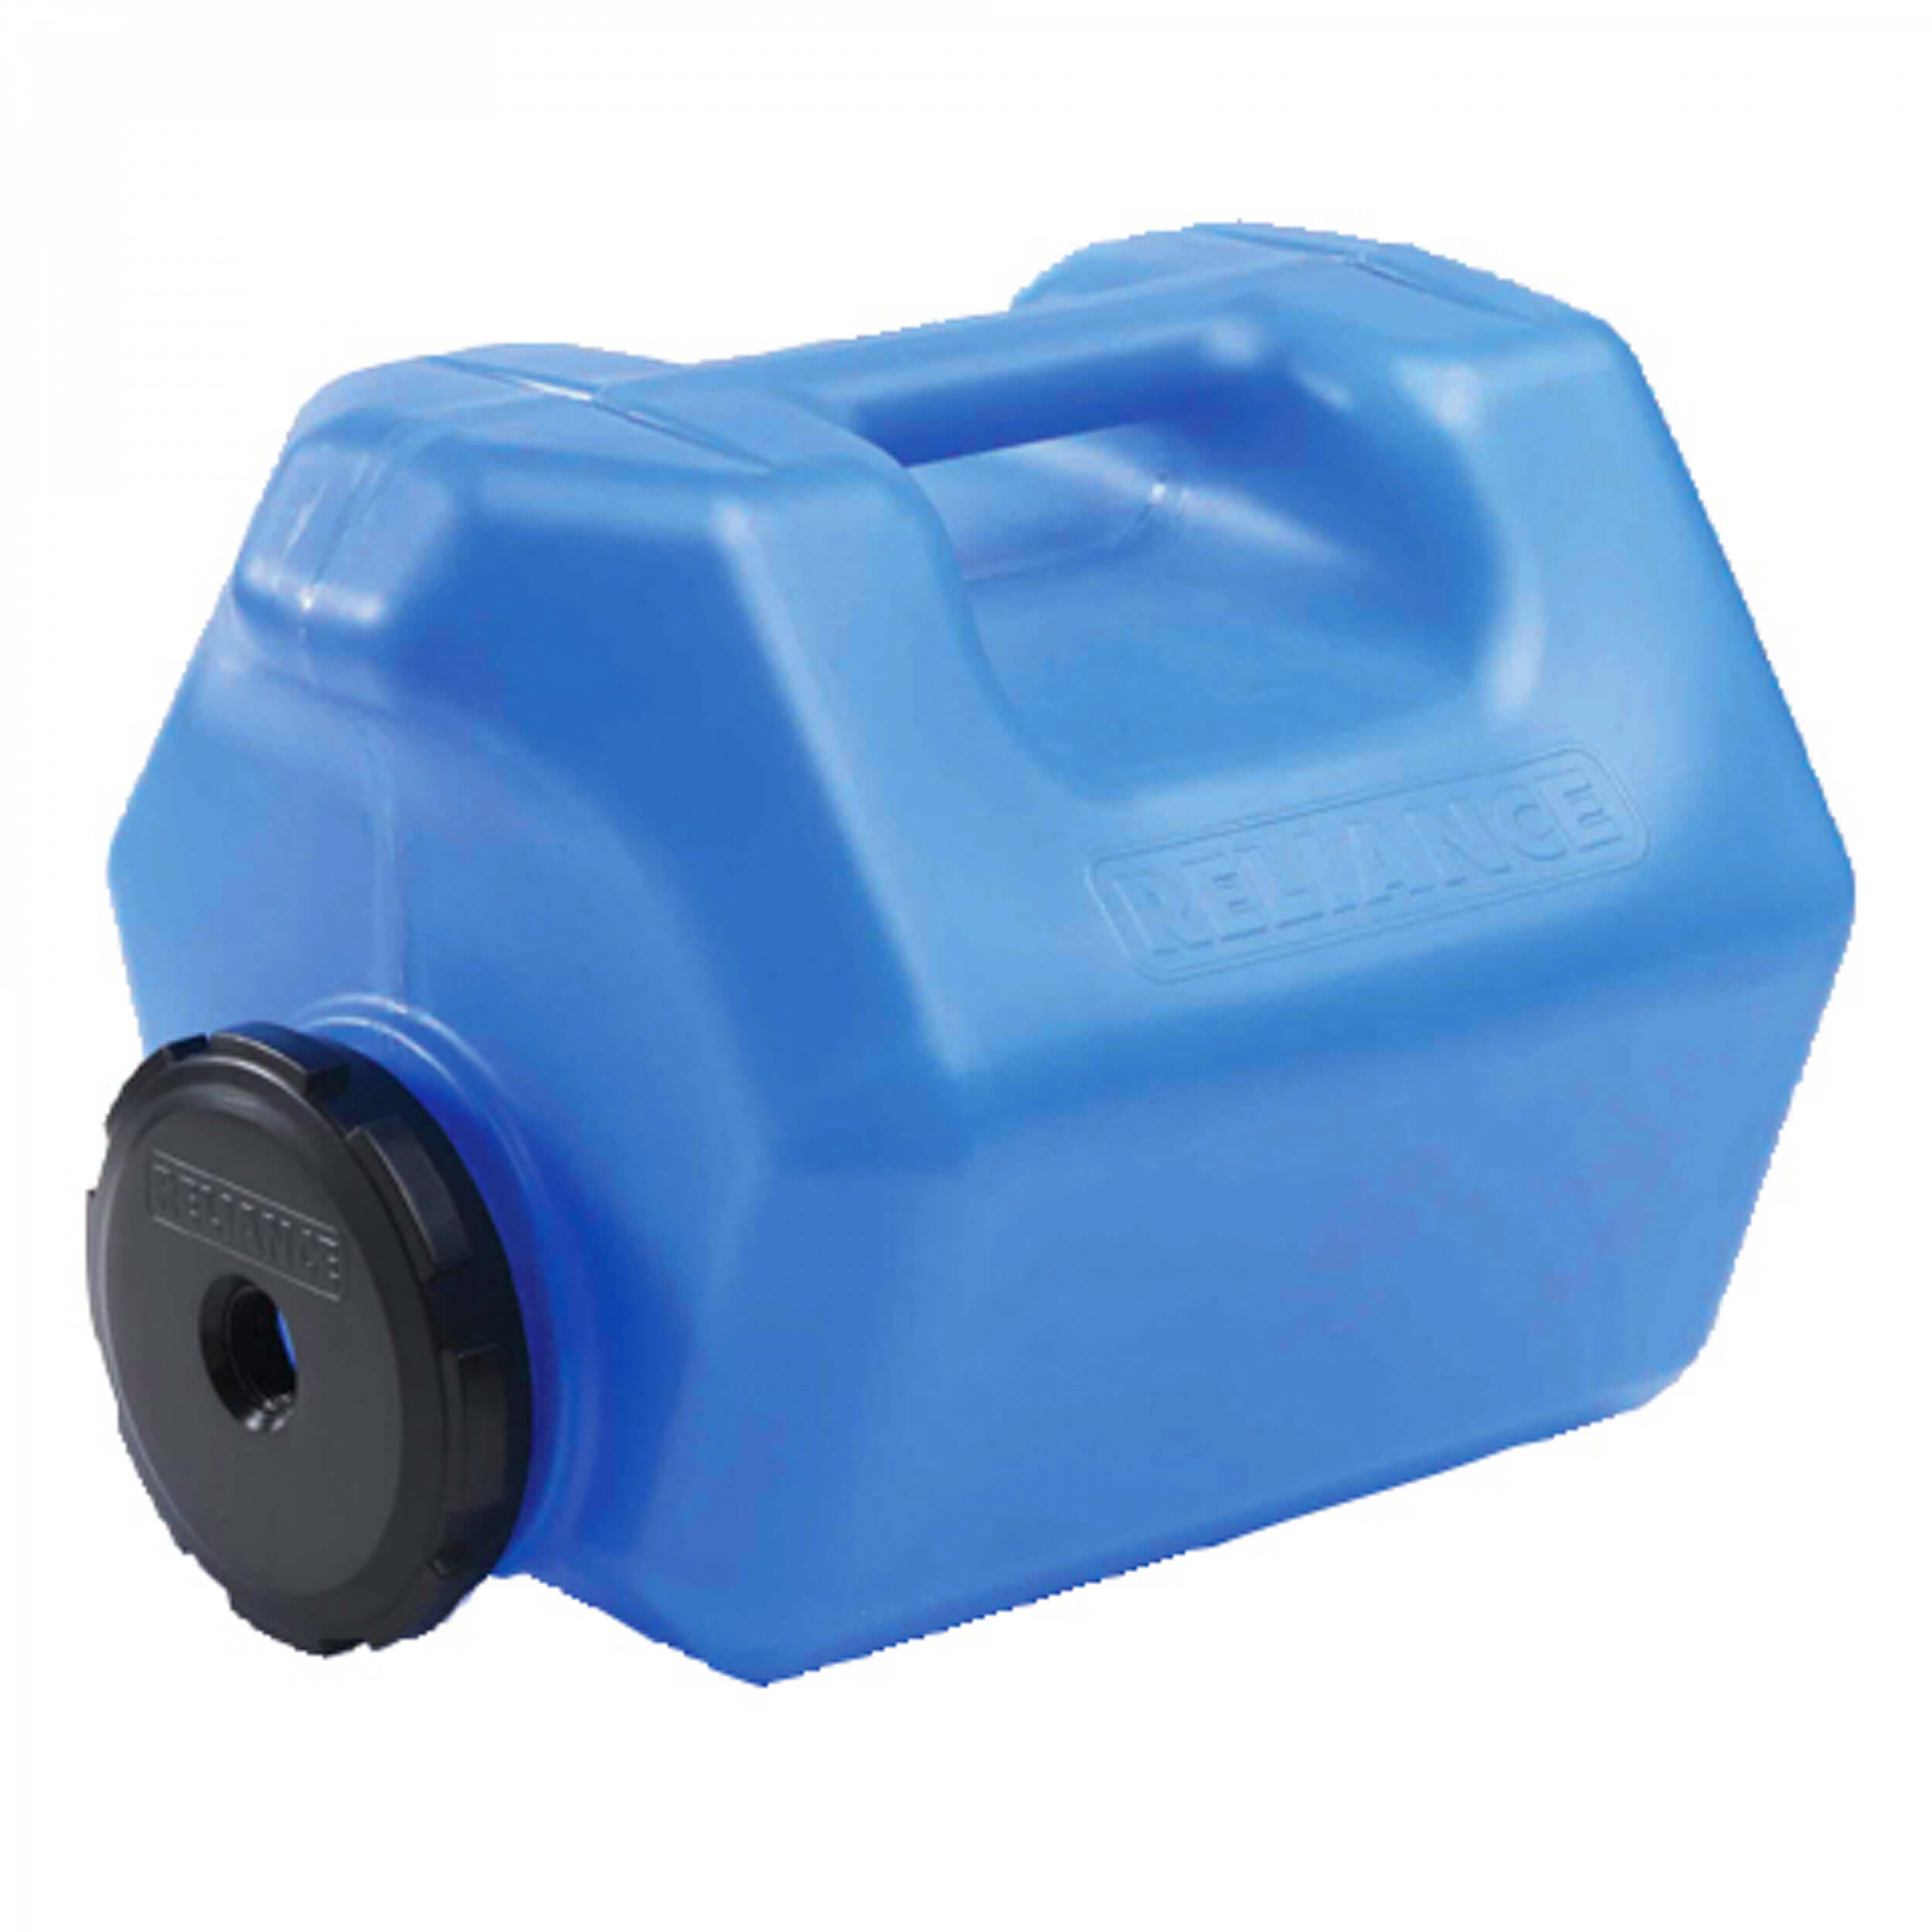 Reliance Kanister Buddy 15L